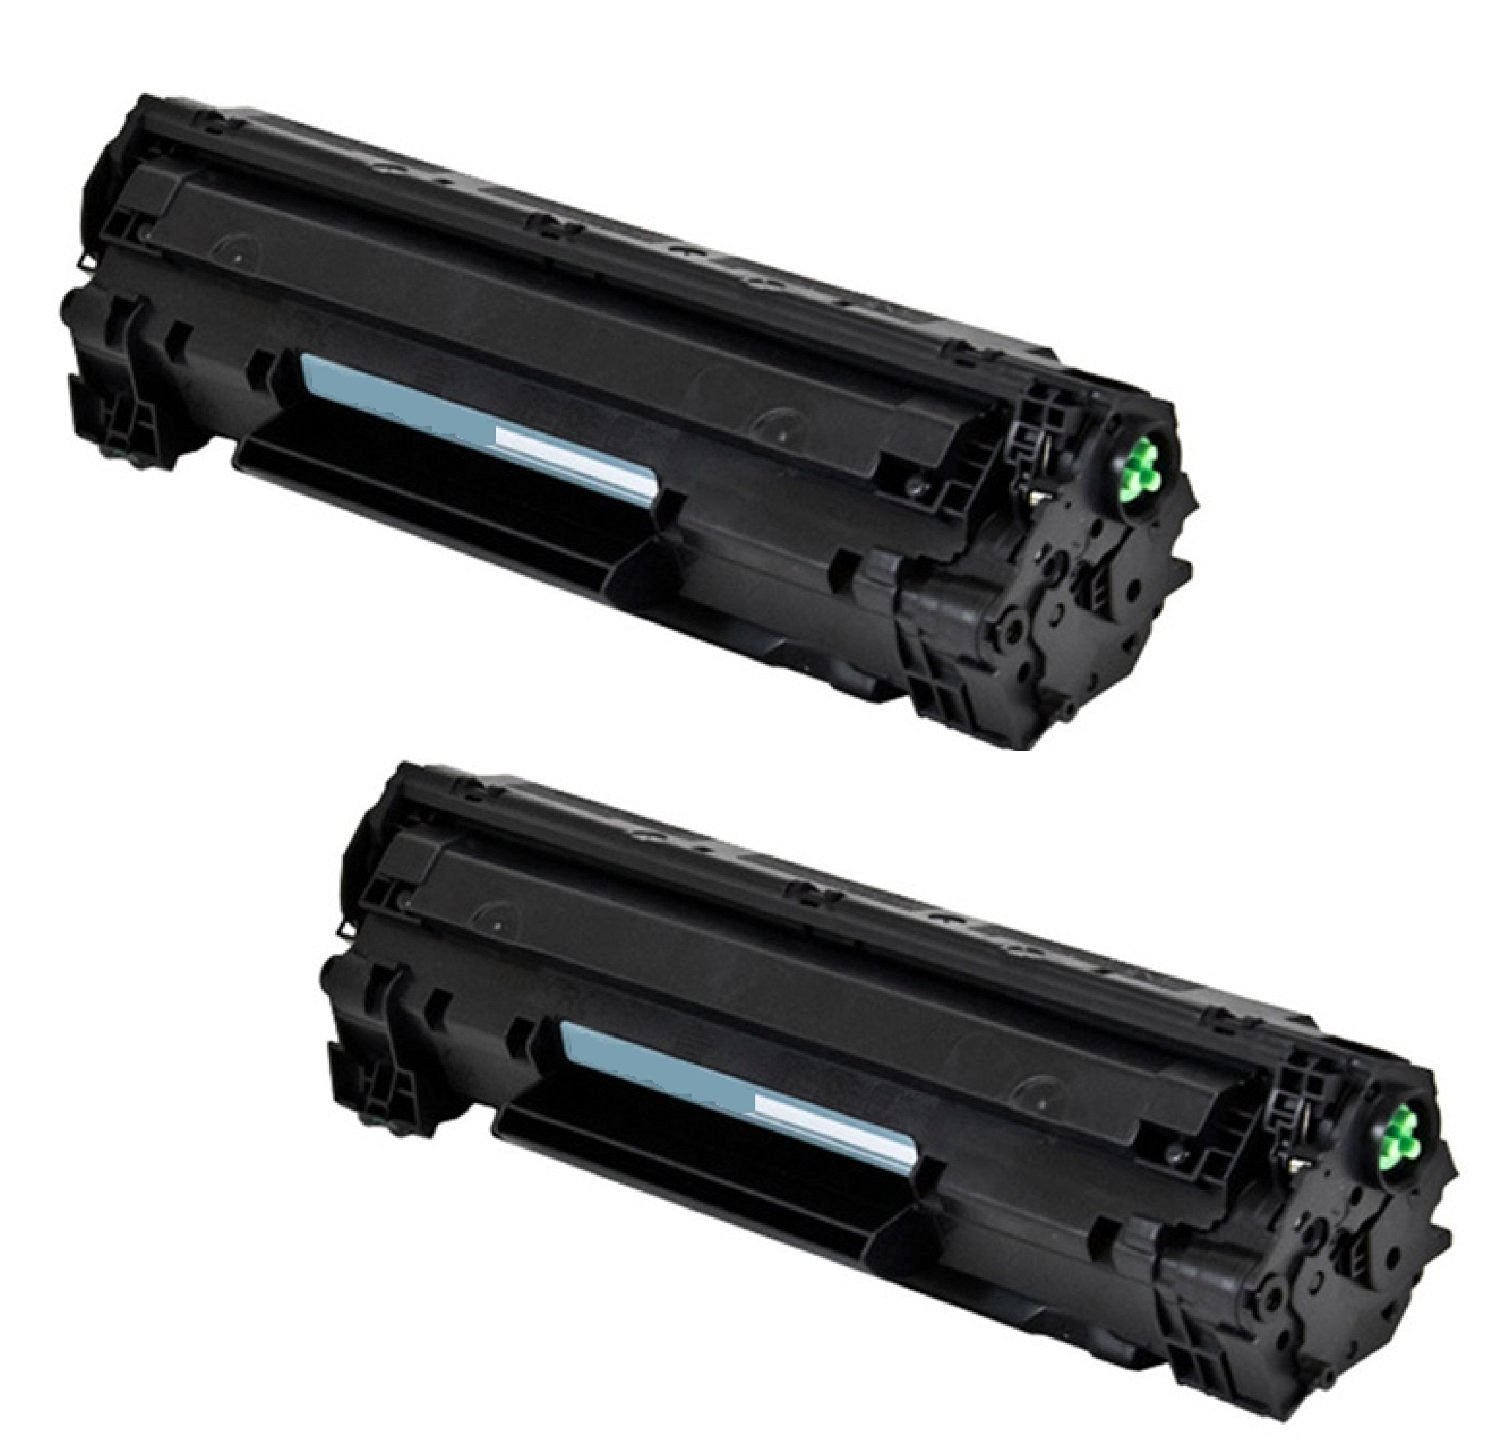 Buy Oimage 2 Pack 83a Cf283a Toner Cartridge Replacing For Hp Black Compatible Laserjet Pro M201dw